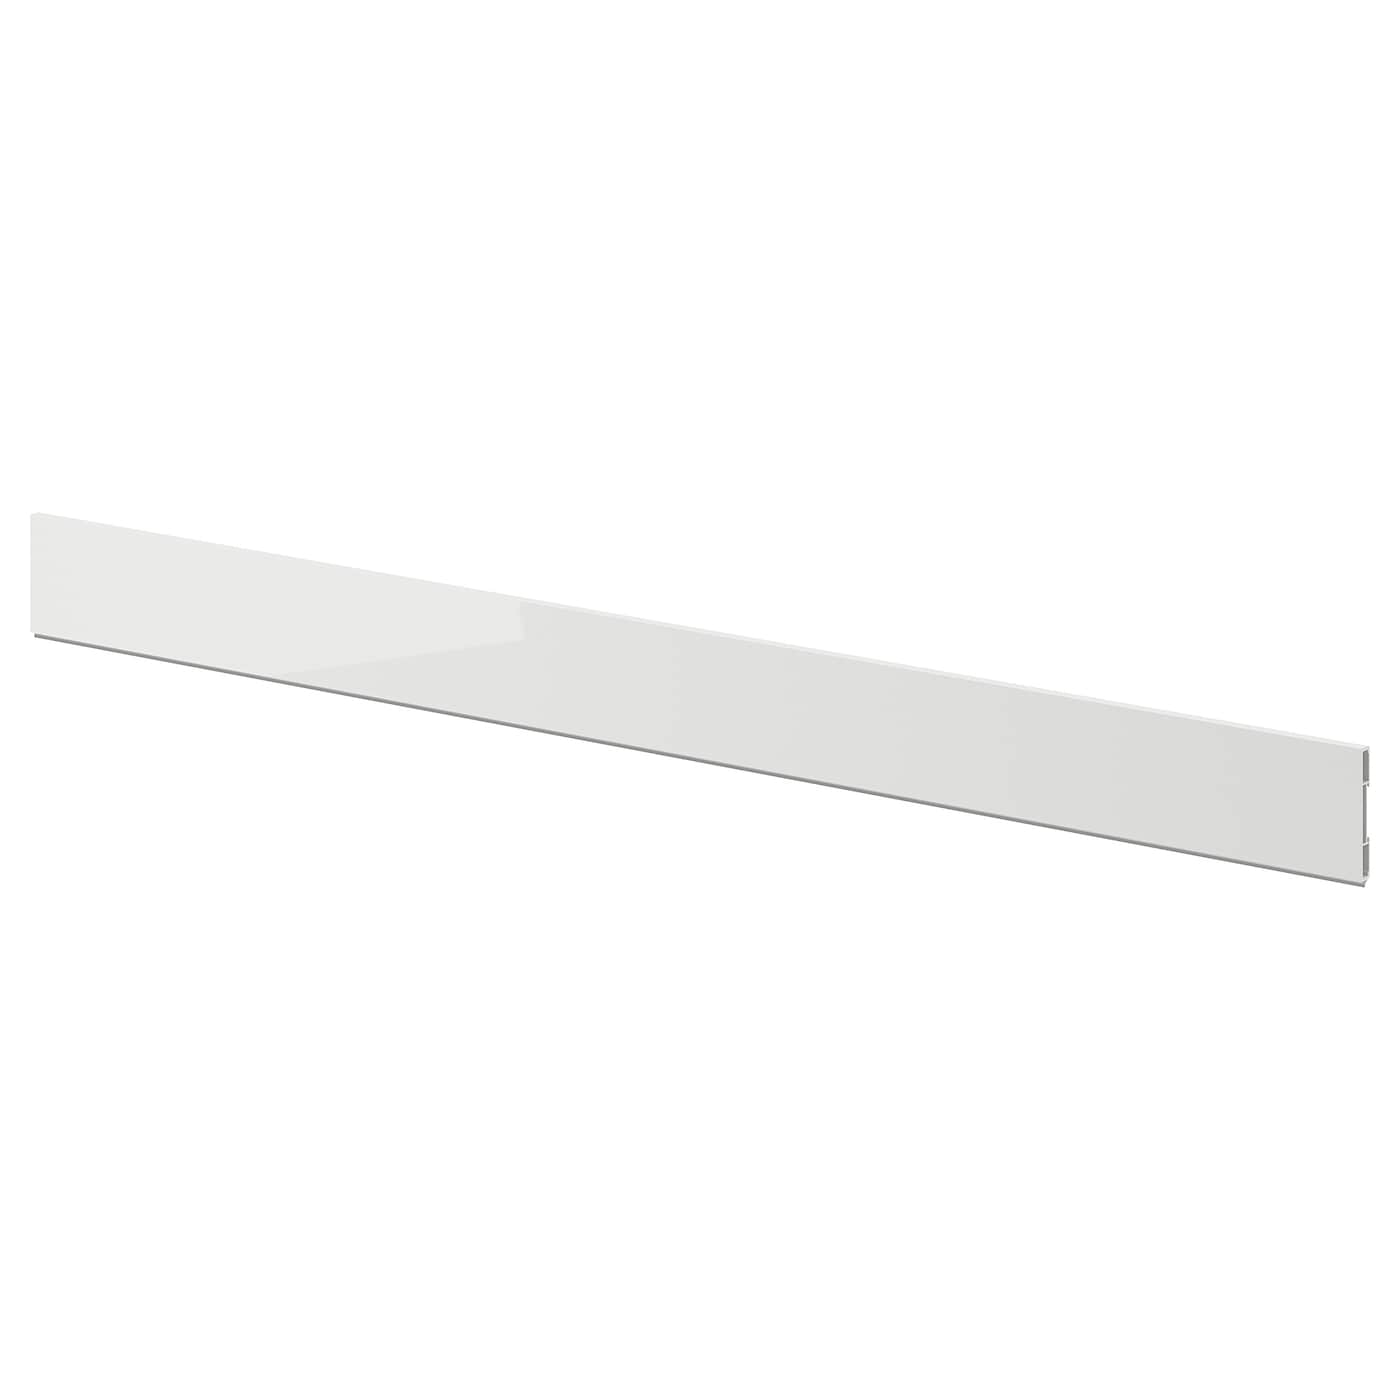 IKEA RINGHULT plinth Covered with high-gloss foil; gives an easy care finish.